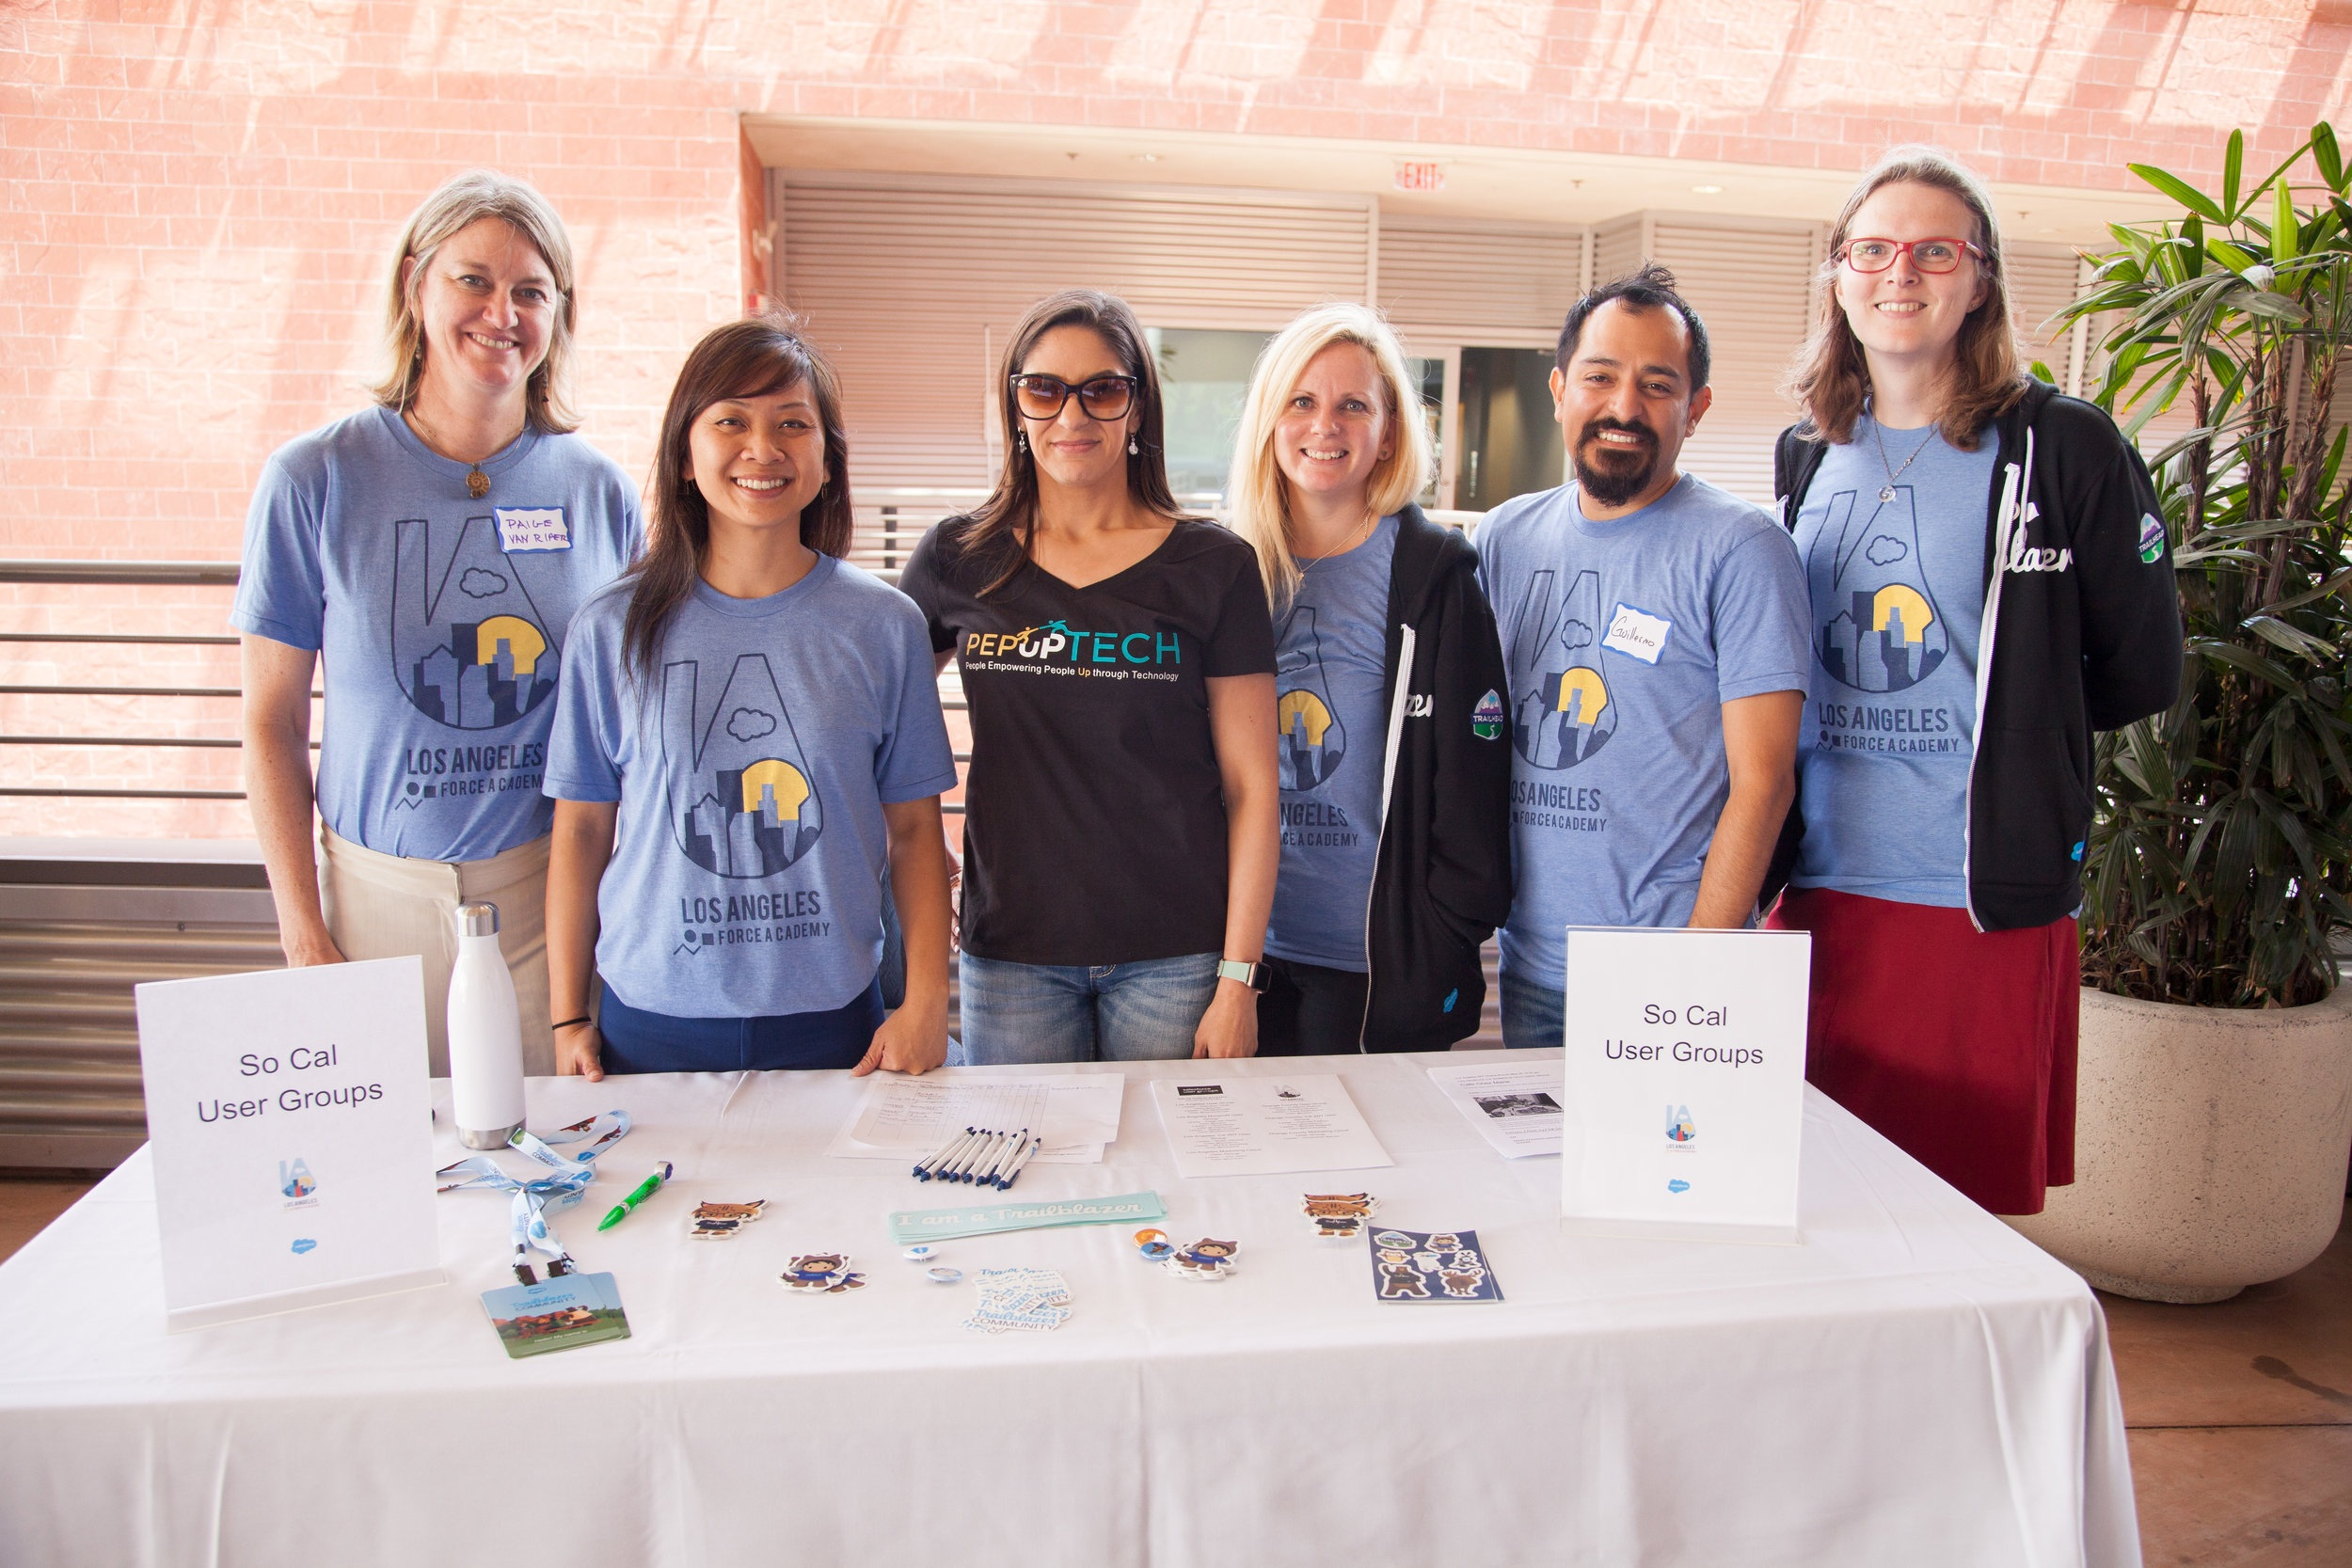 Event Volunteers Needed - We can't do it alone.